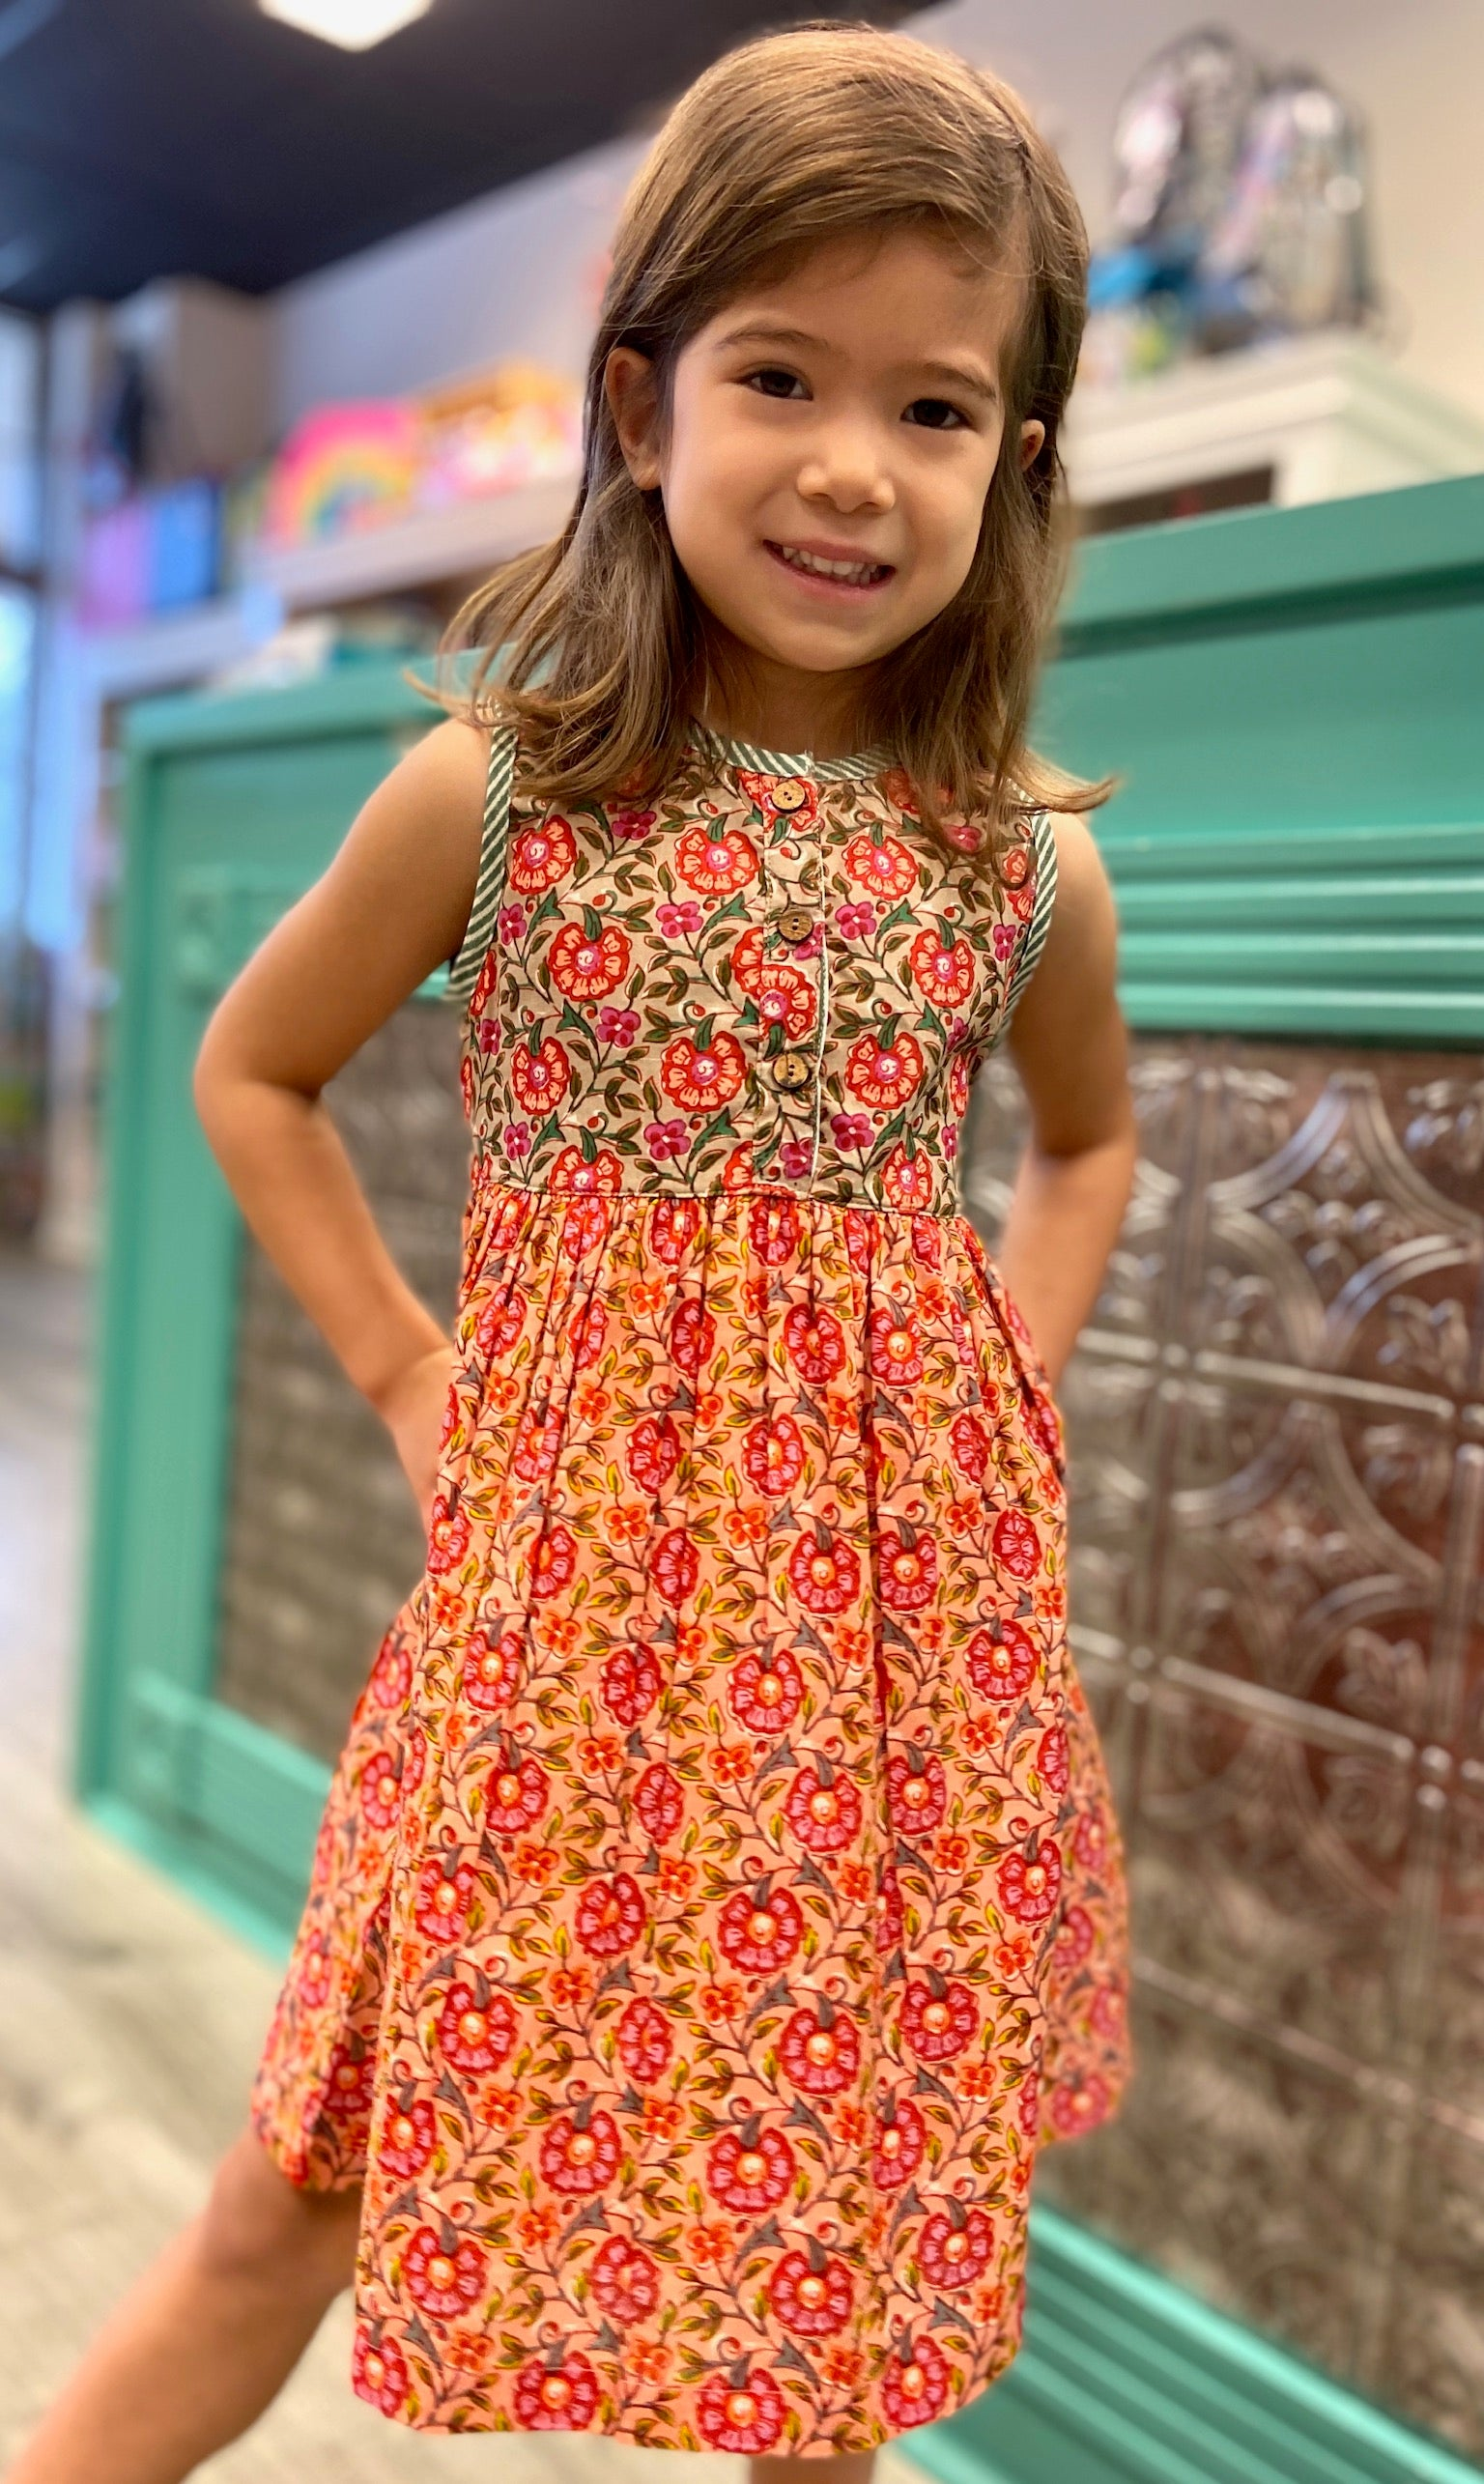 Mixed Floral Dress